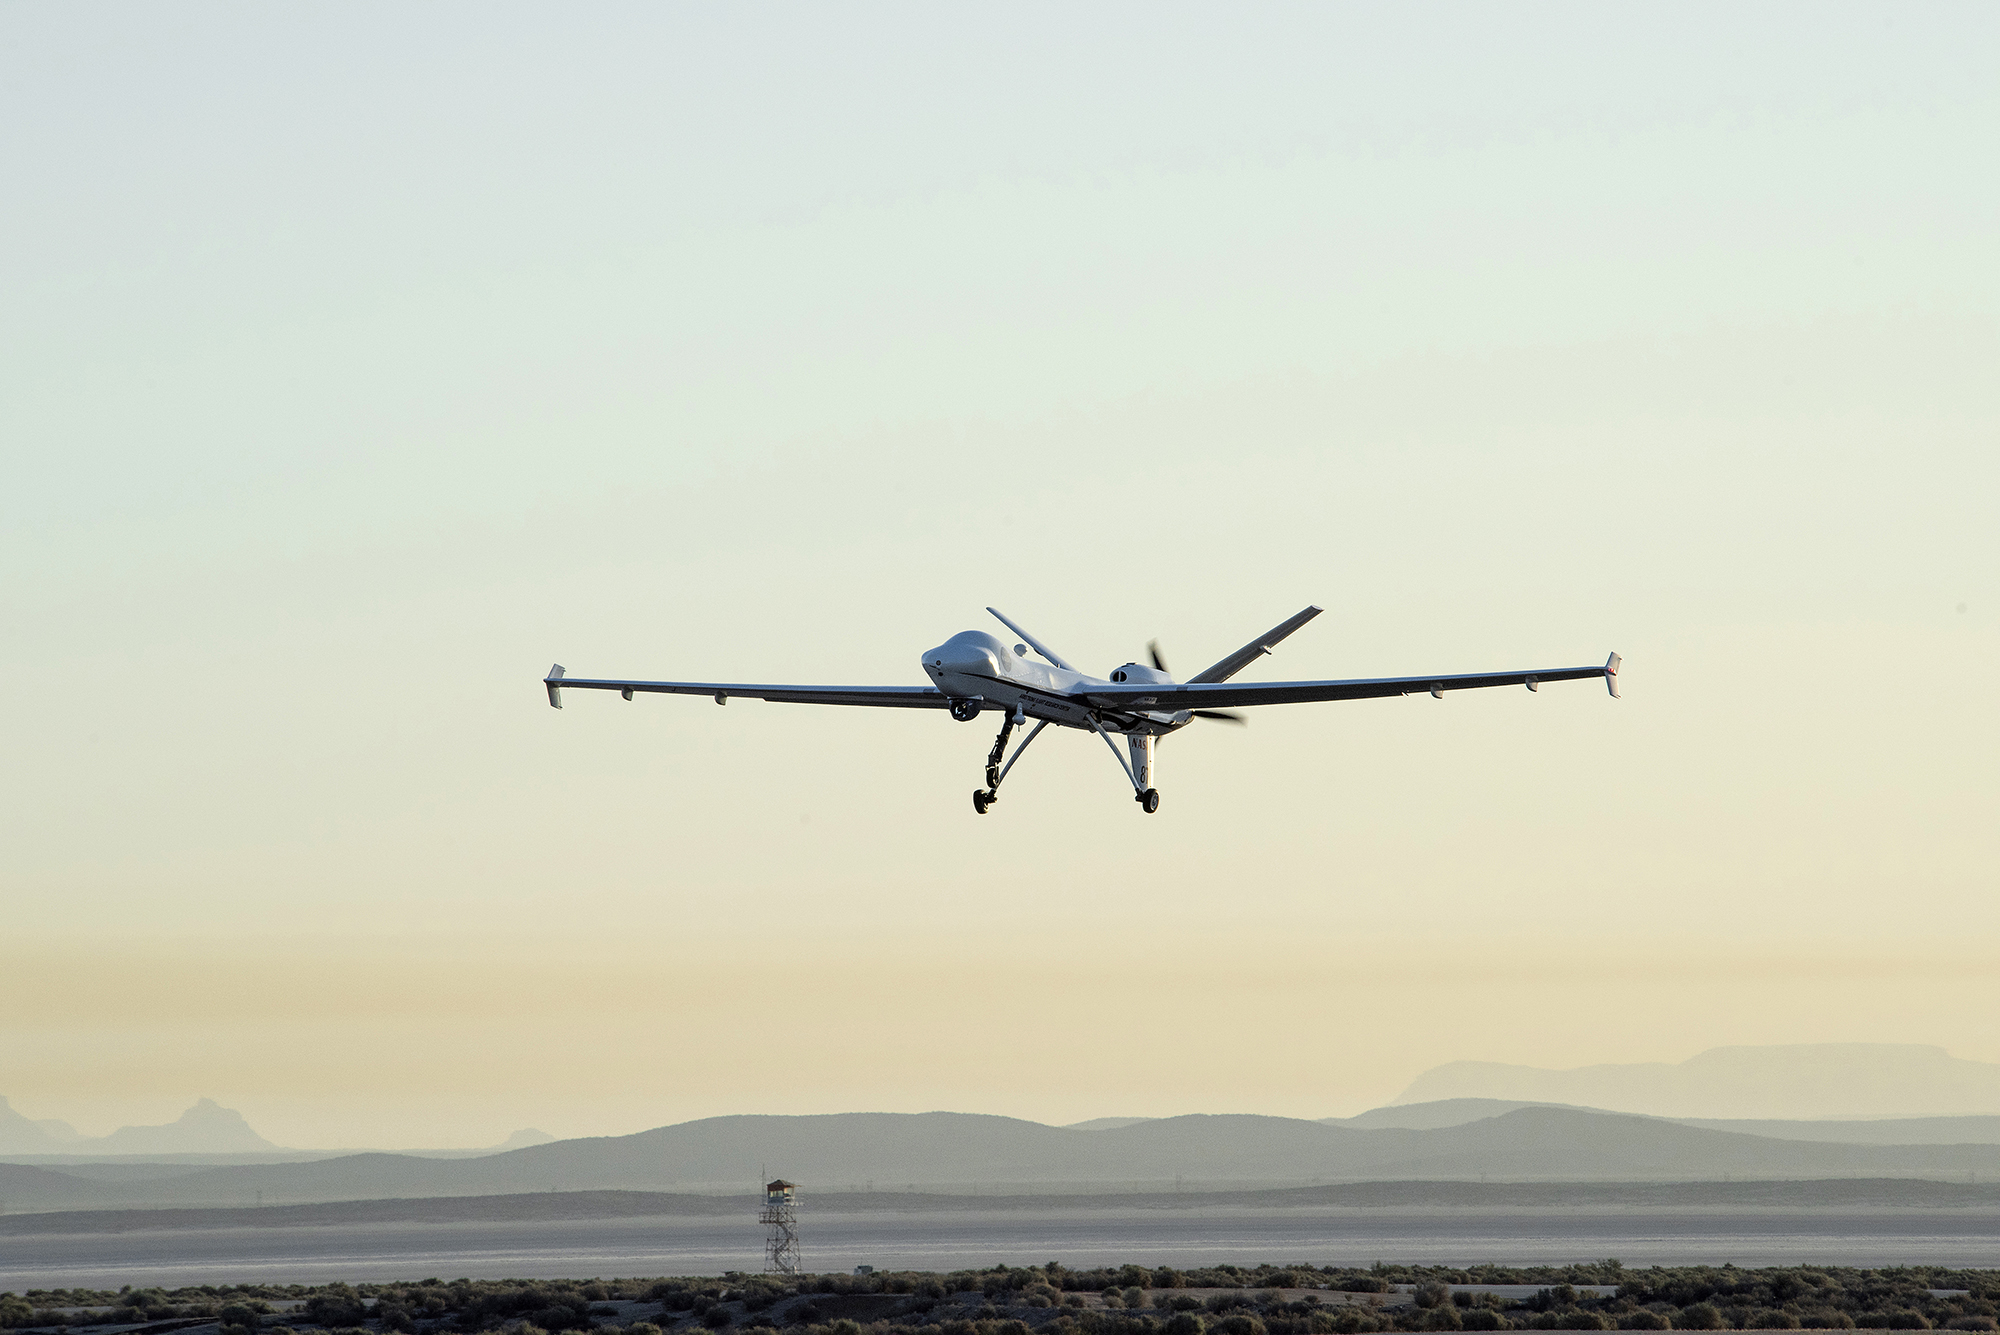 NASA's Unmanned Ikhana Flies in National Airspace Without Chase Plane | NASA